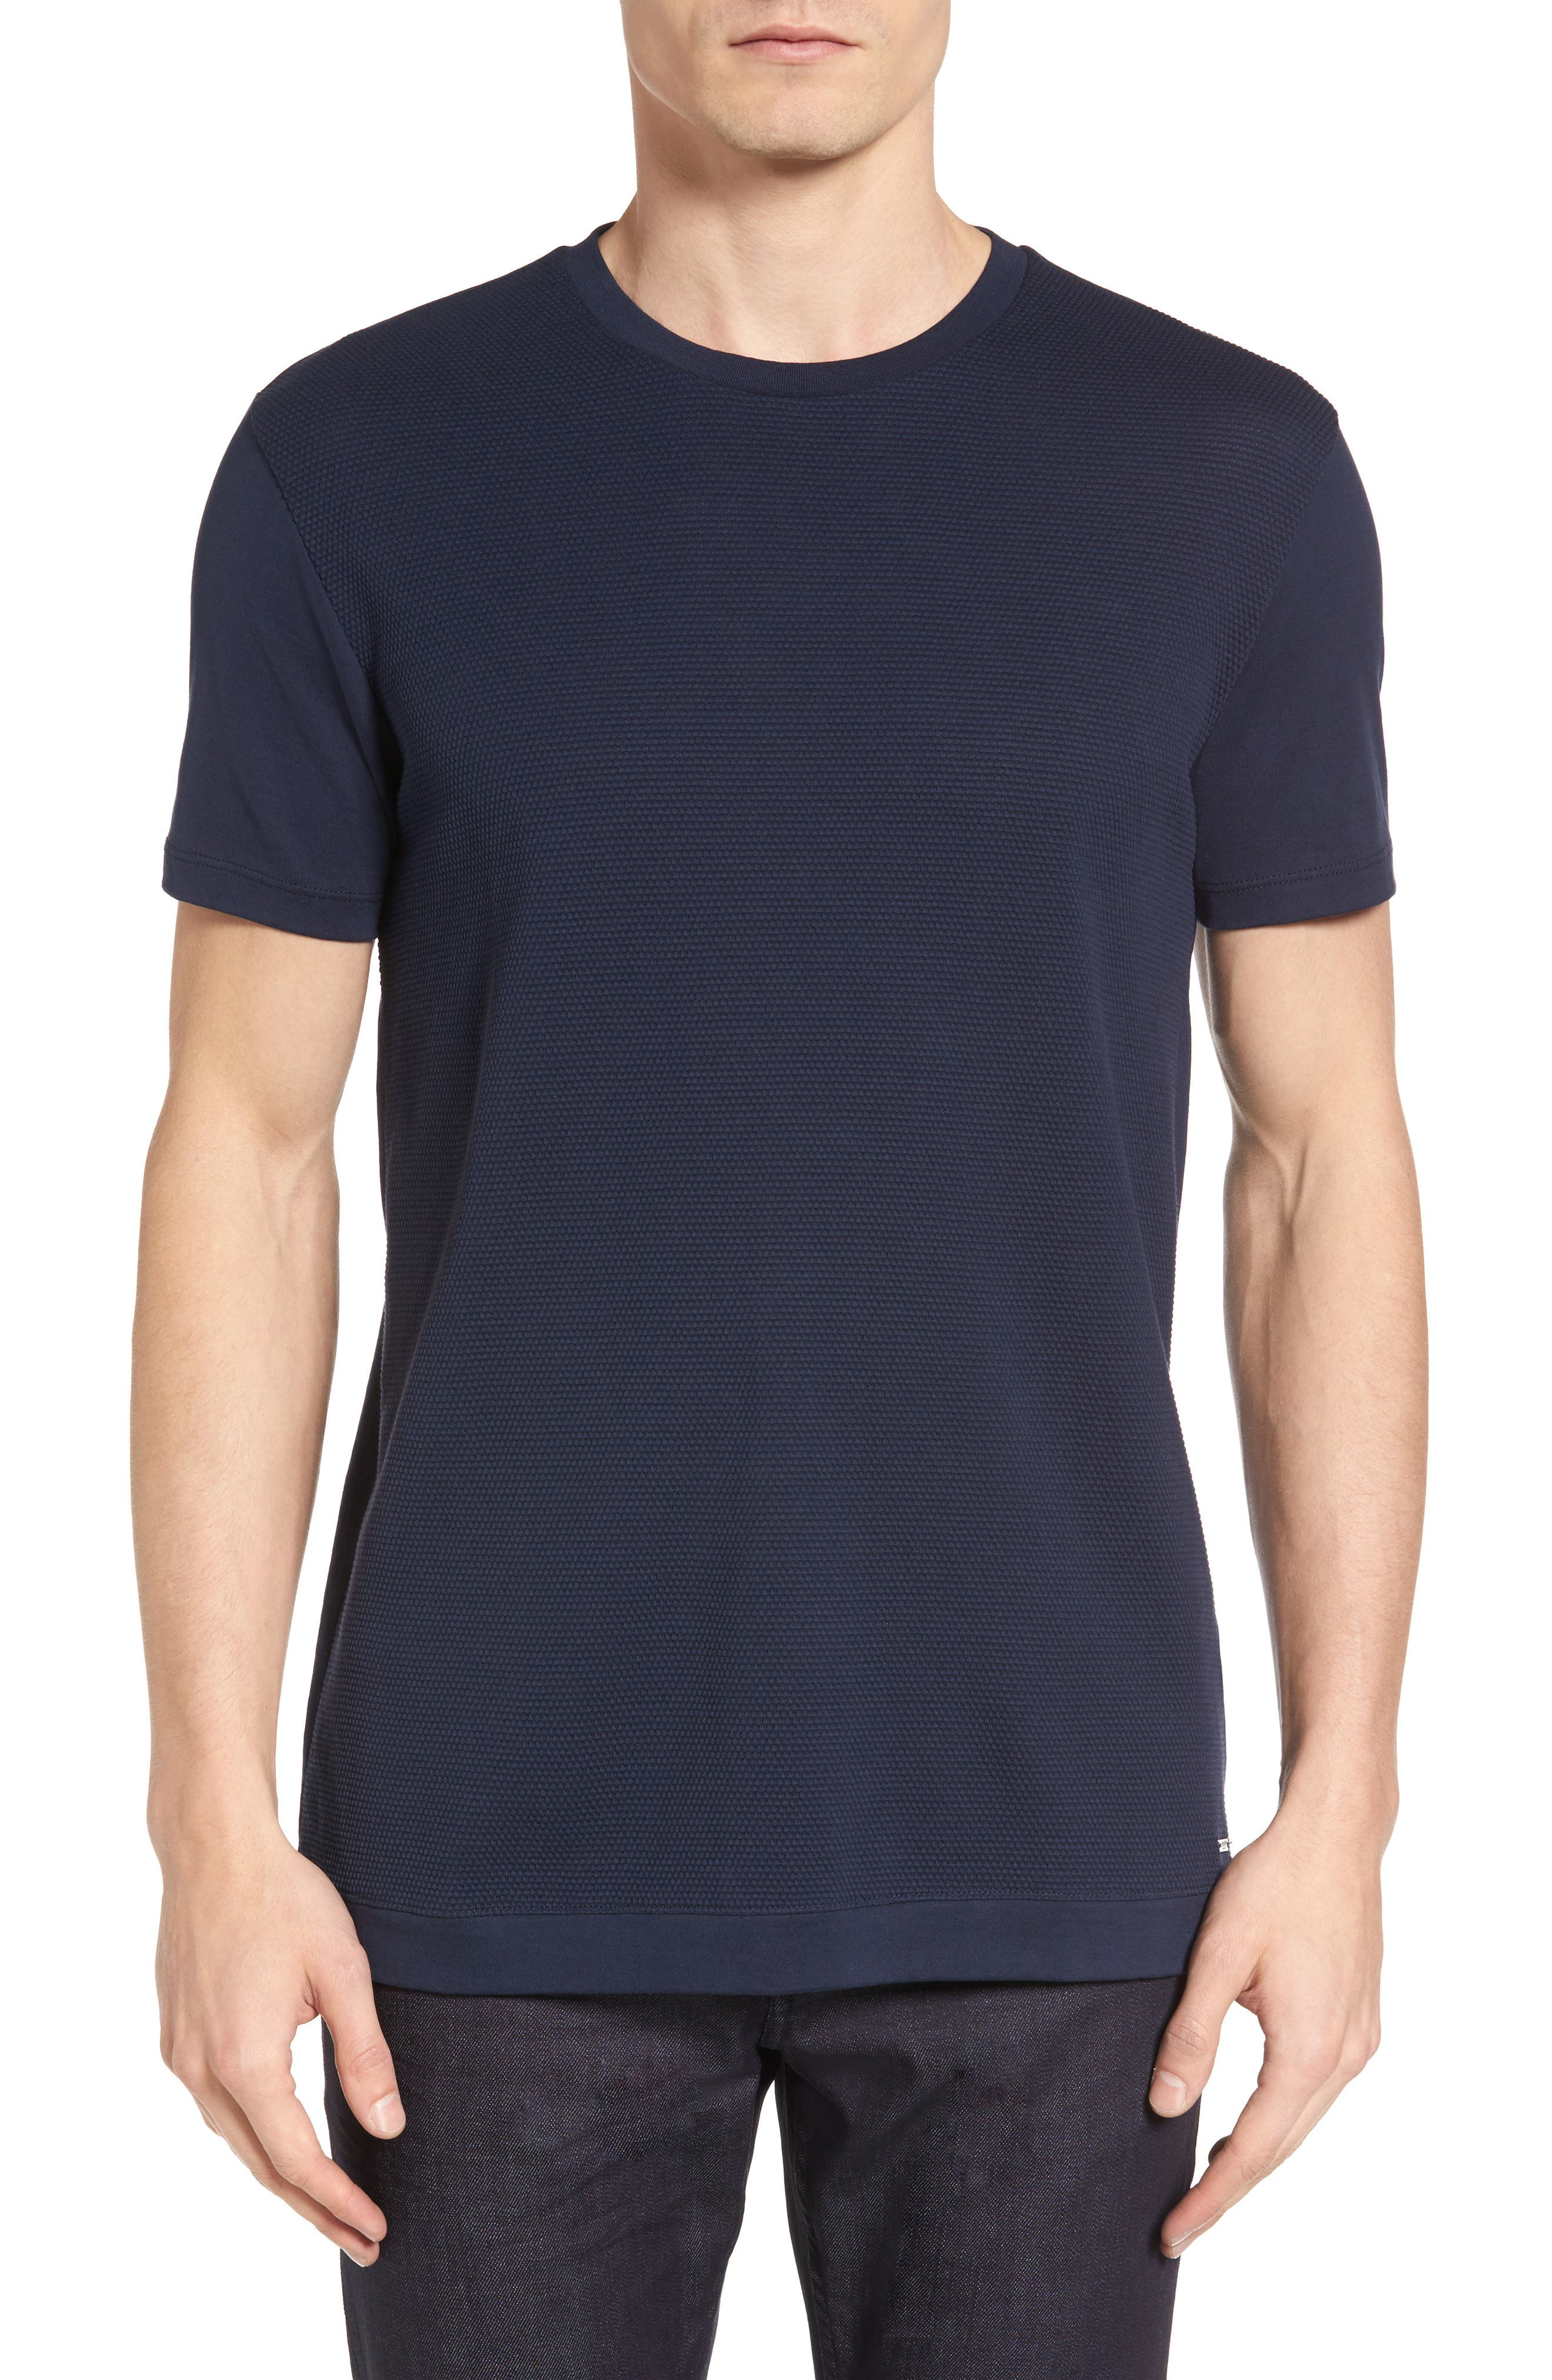 Tessler Micropattern T-Shirt,                         Main,                         color, Navy